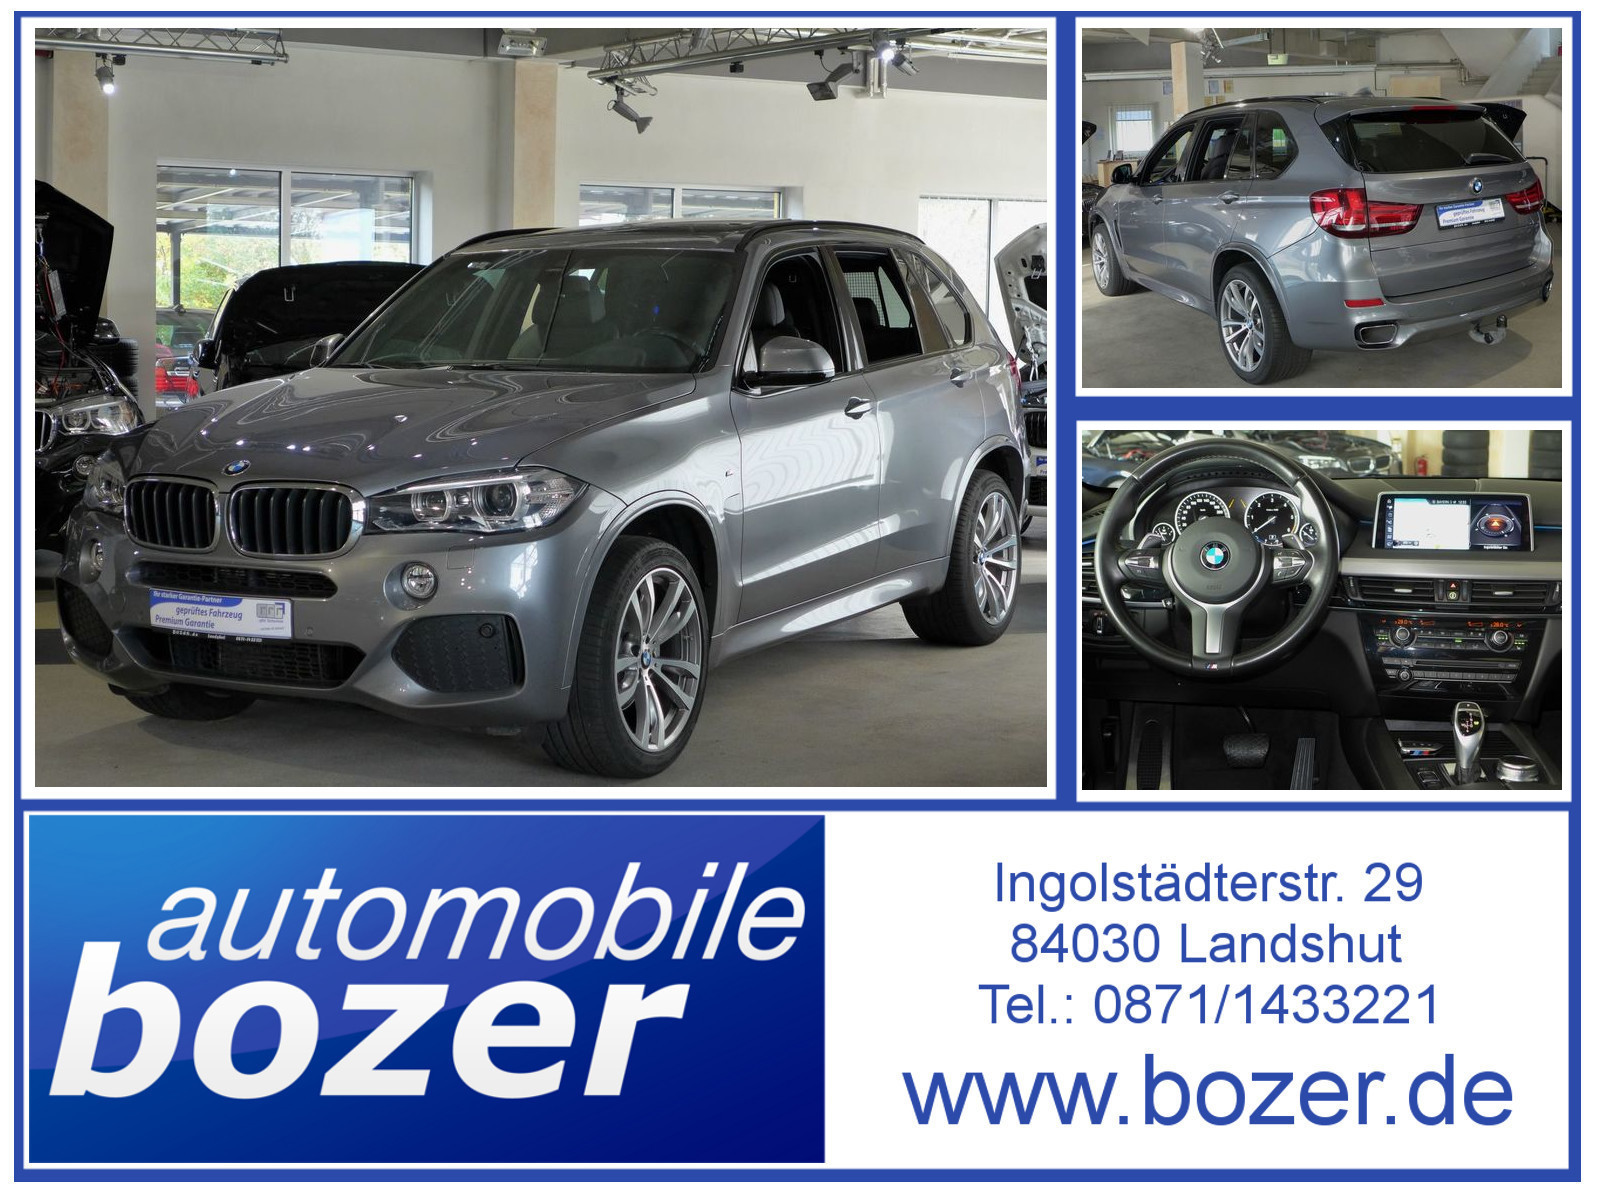 BMW_X5_picture_02_01.jpg